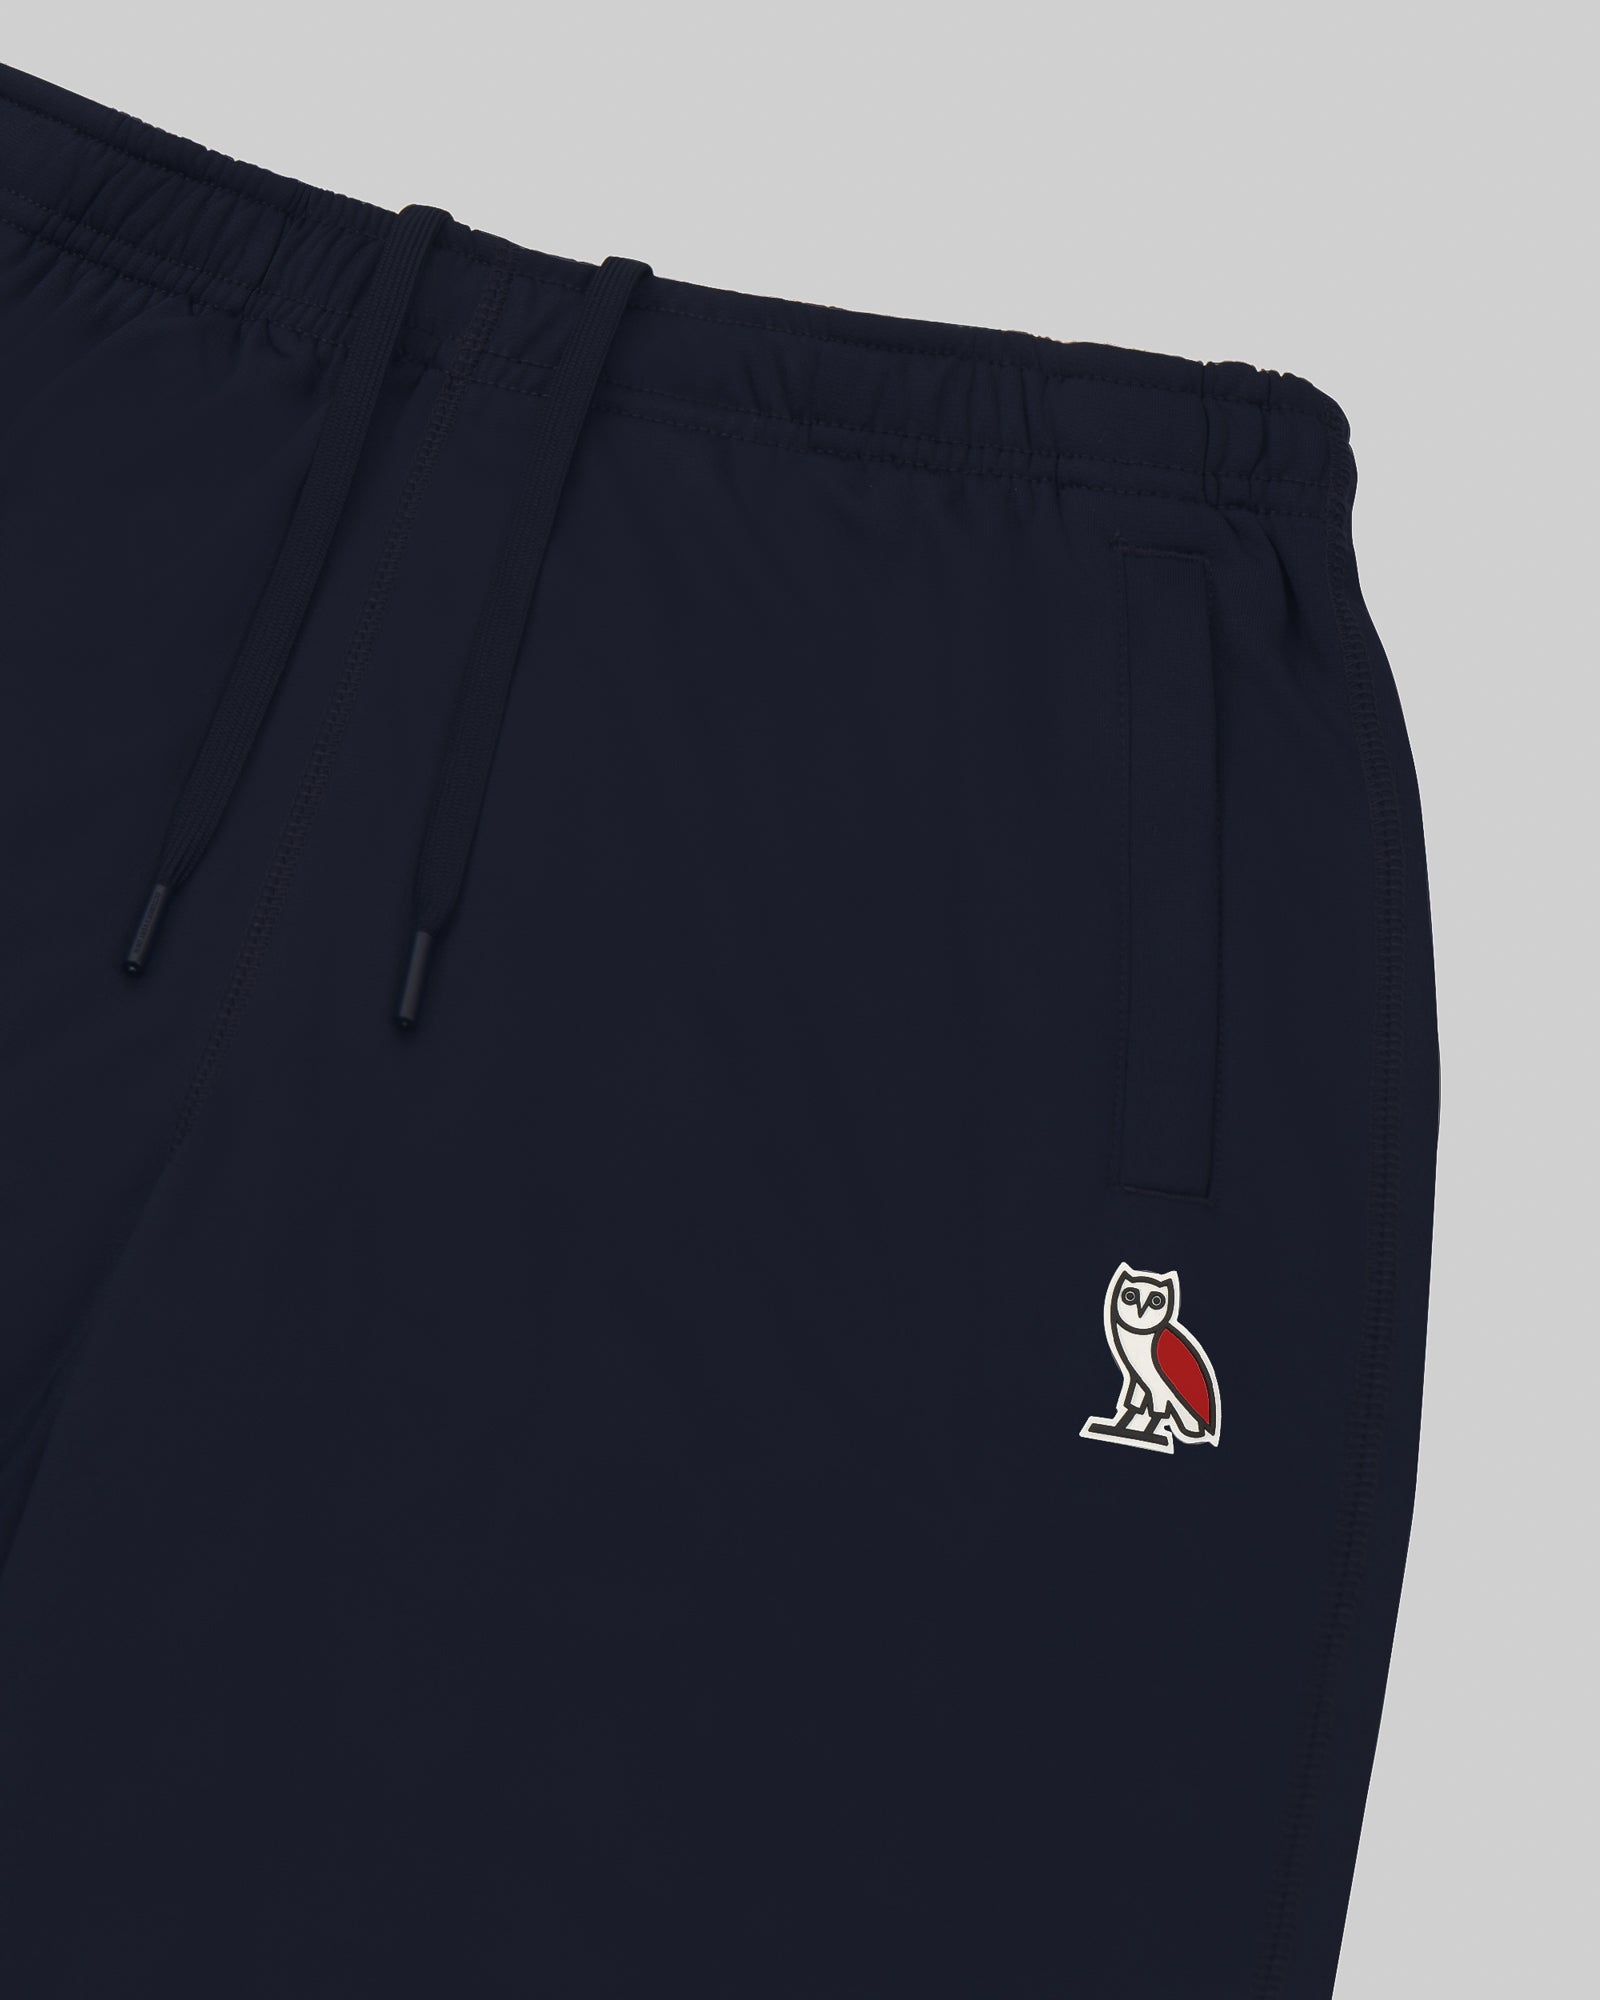 FAMILIA POLY FLEECE SWEATPANT - NAVY